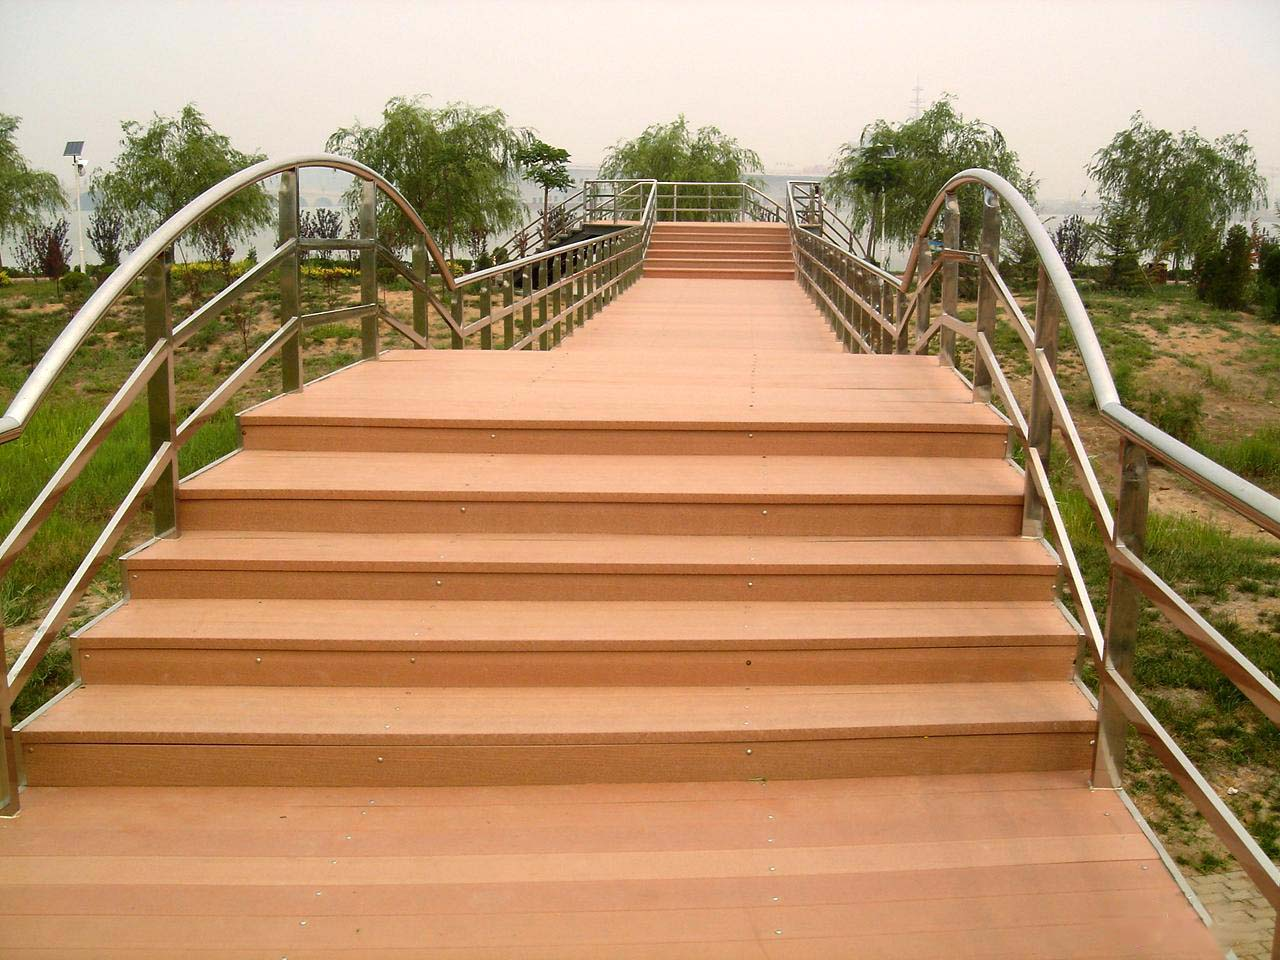 Wood Plastic Composite Decking : Wpc decking wood plastic composite deck floor eco